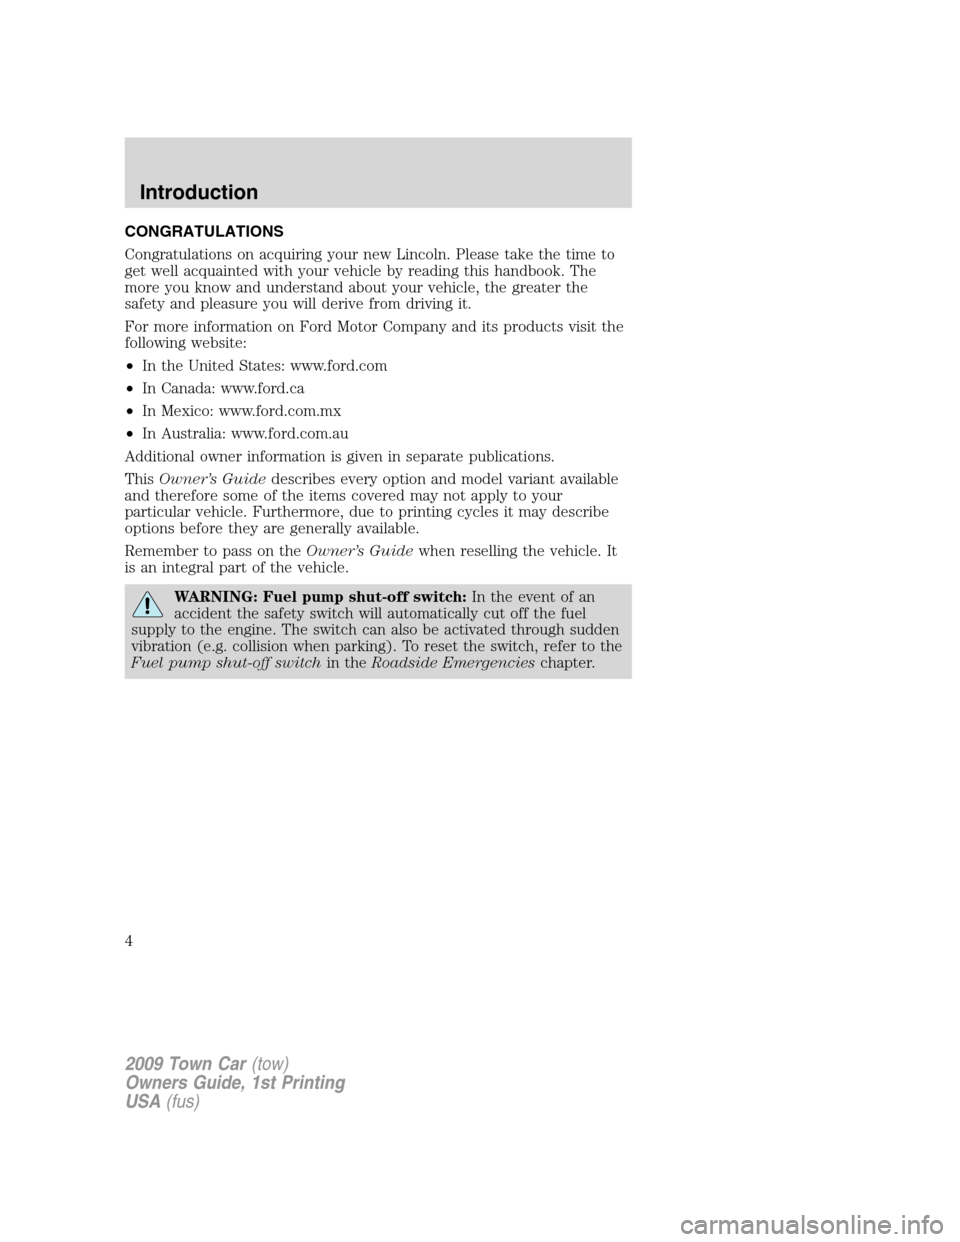 LINCOLN TOWN CAR 2009  Owners Manual, Page 4